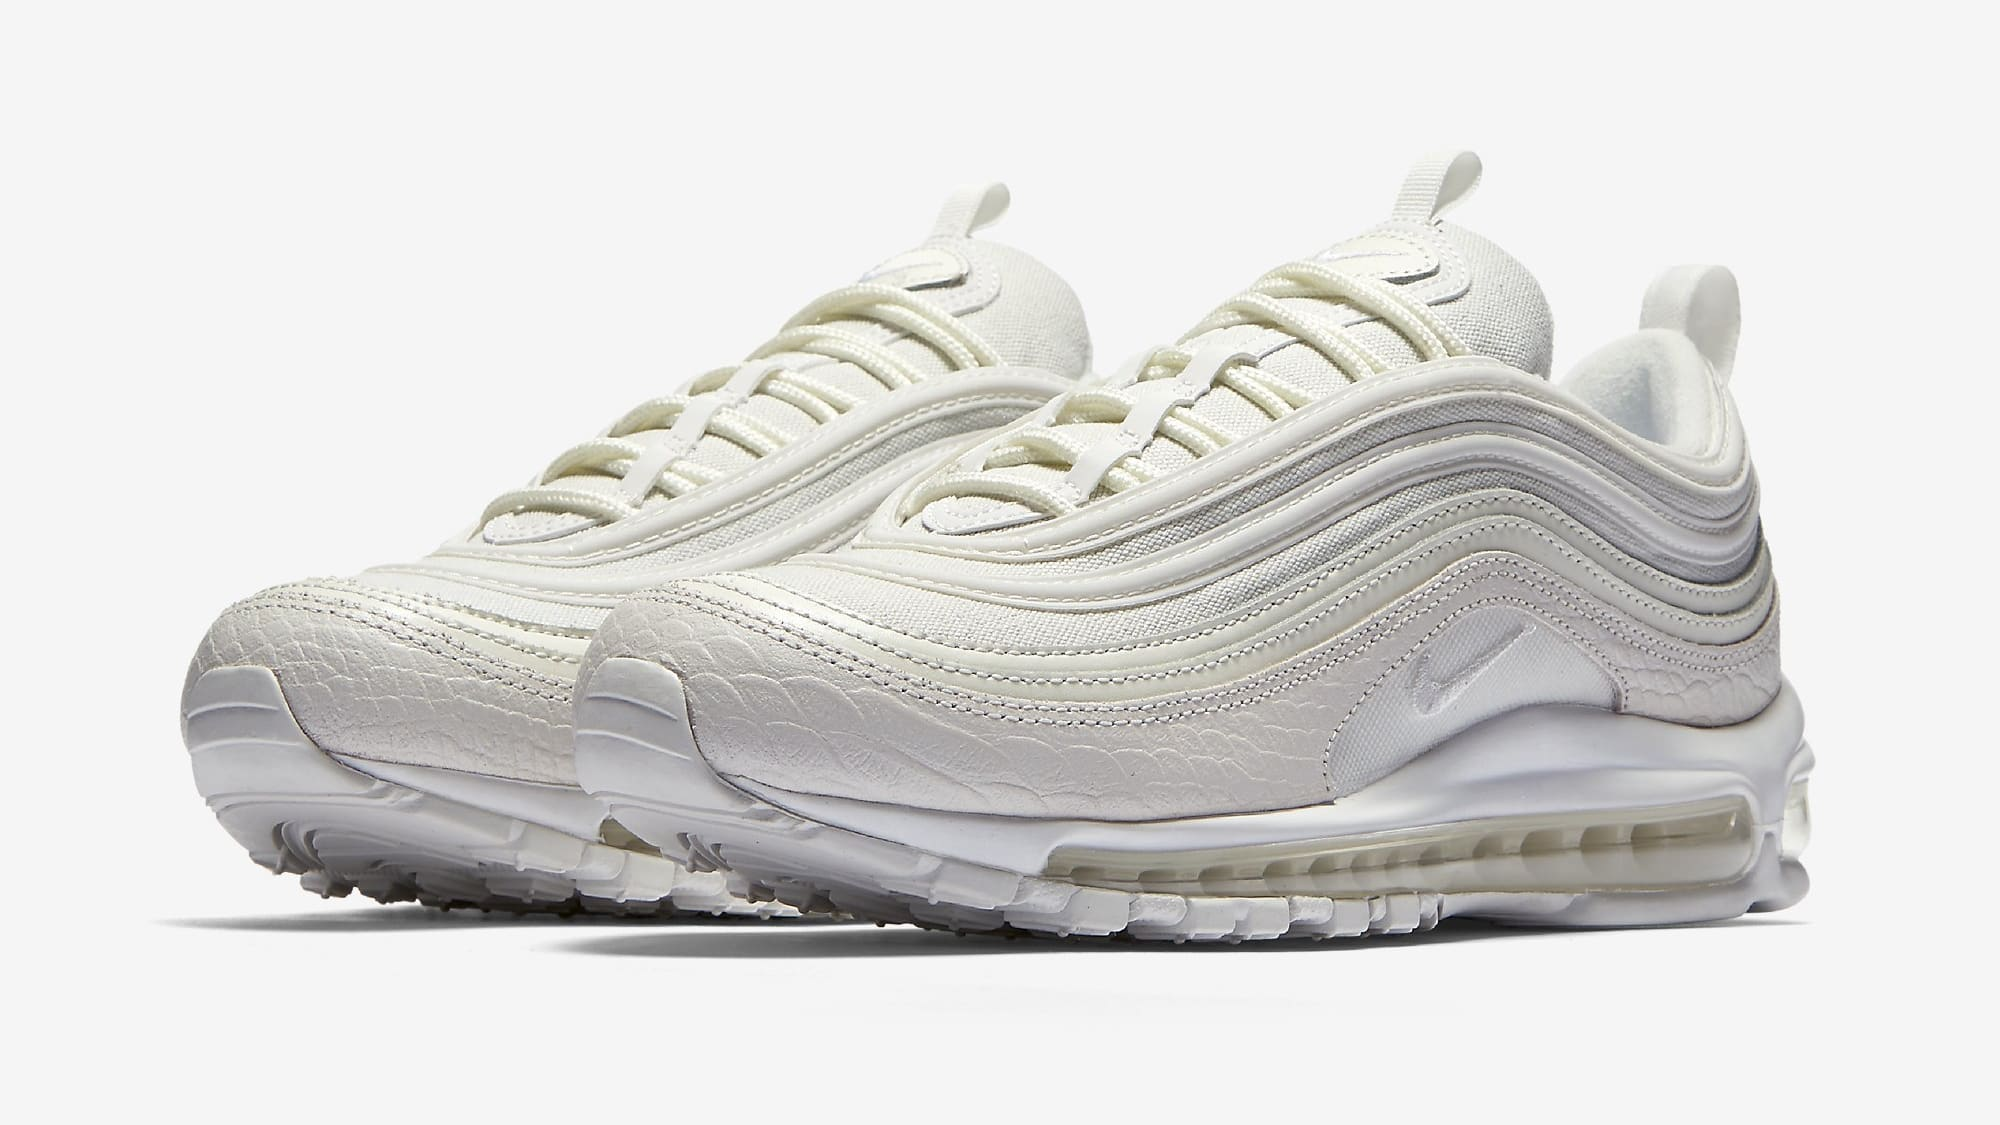 nike air max 97 white men's sneakers